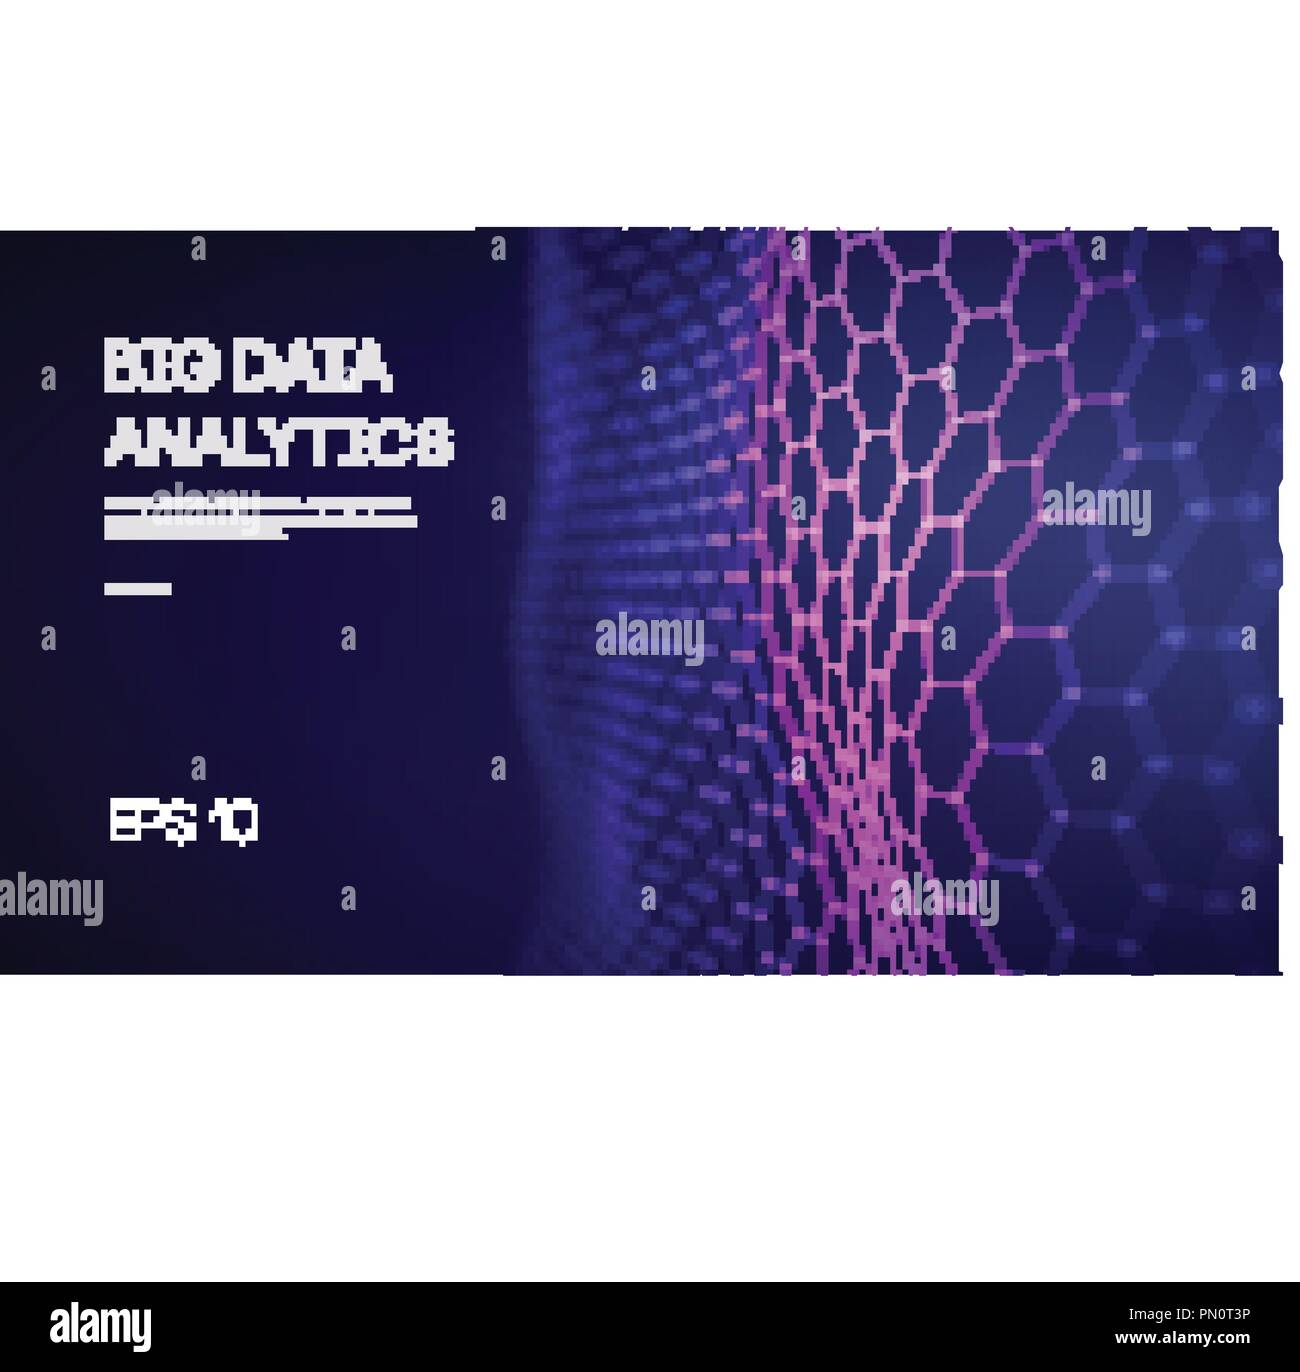 Big Data. Business inteligence technology background. Binary code algorithms deep learning virtual reality analysis. Data science learning machine. Artificial intelligence data research and automation - Stock Image